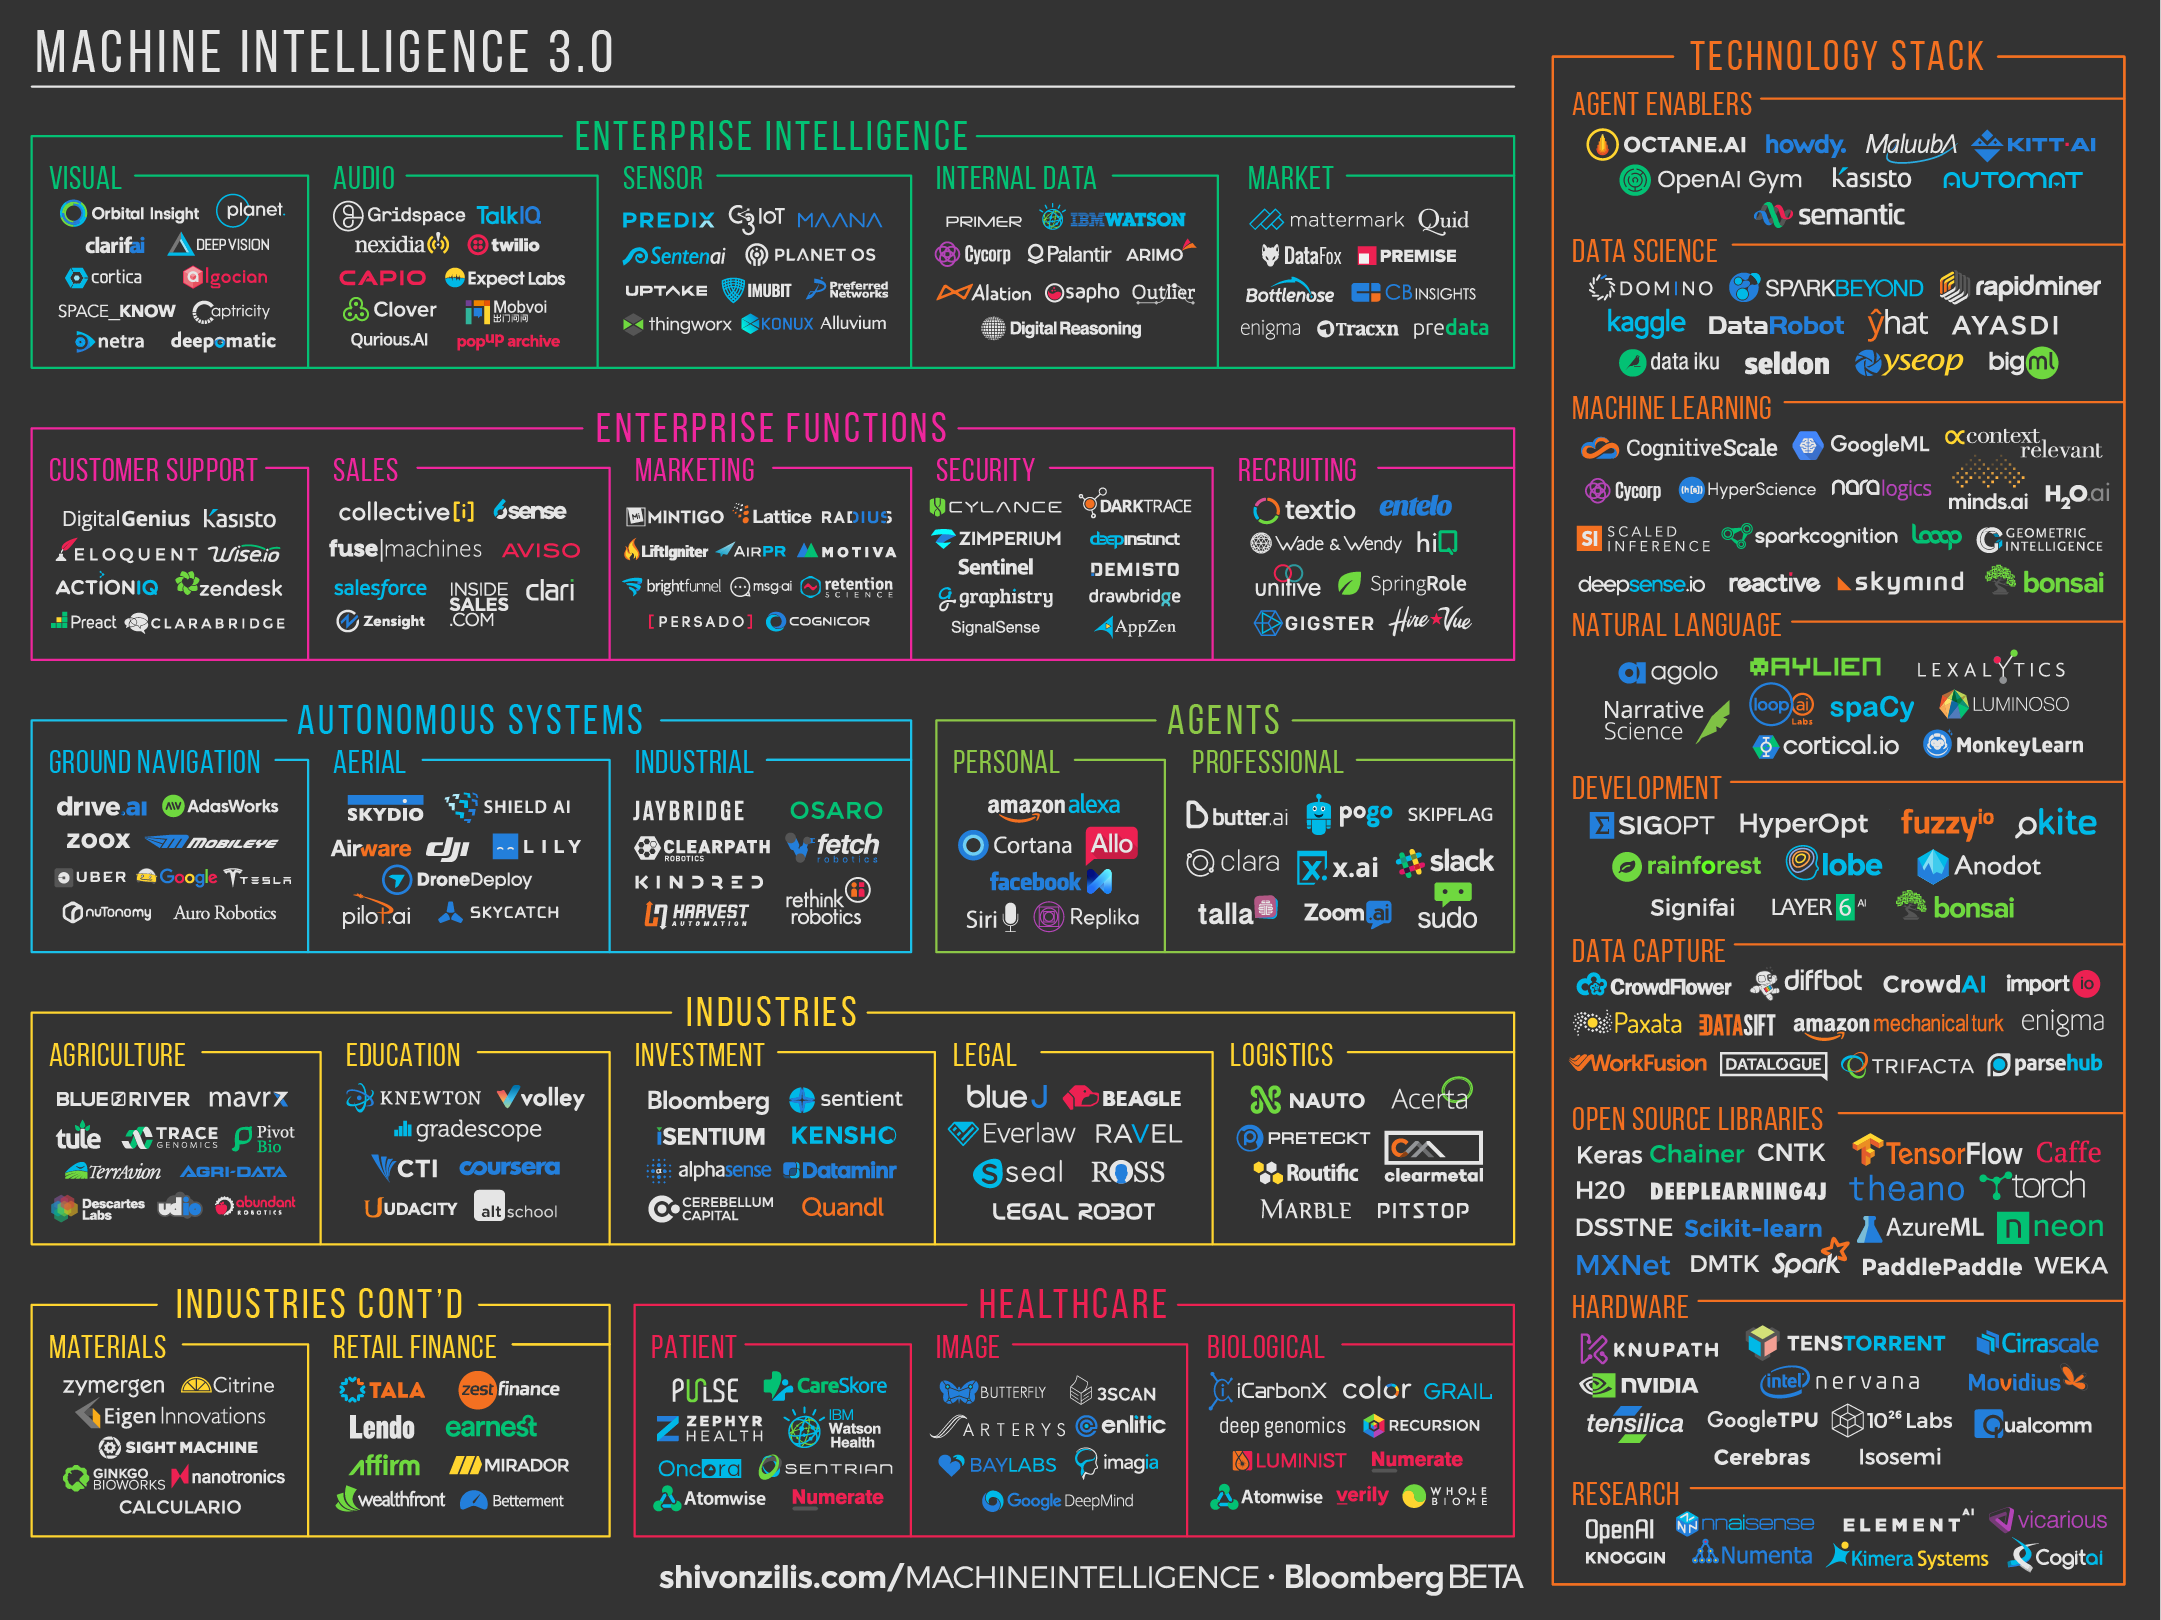 Machine Intelligence Landscape 3.0 / Design by Heidi Skinner